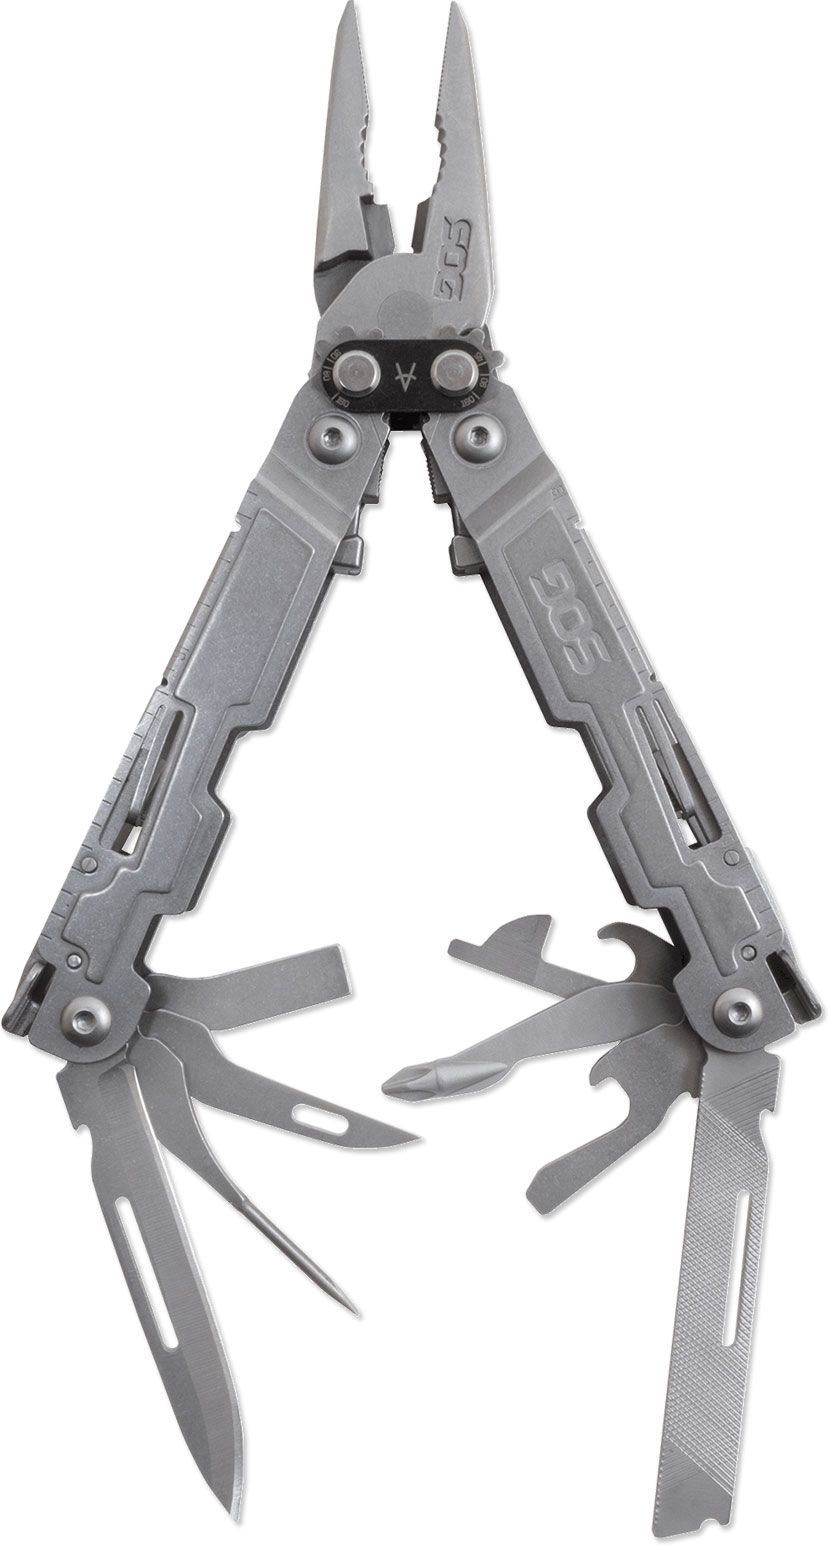 SOG PowerAccess Multi-Tool with 18 Tools, 5.9 inch Overall